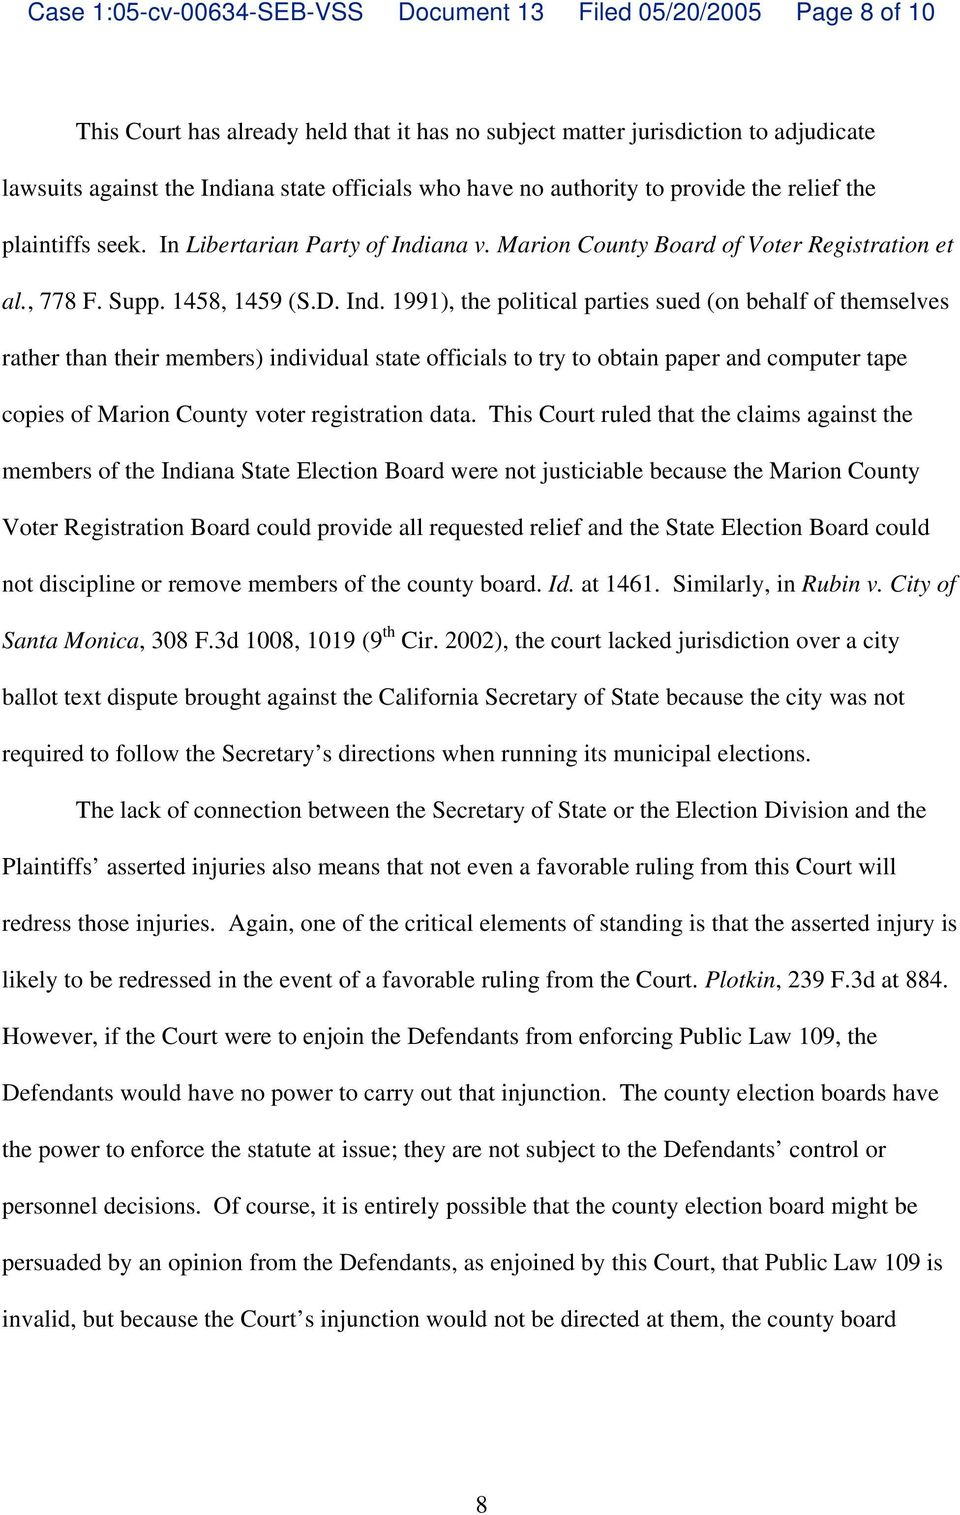 ana v. Marion County Board of Voter Registration et al., 778 F. Supp. 1458, 1459 (S.D. Ind.